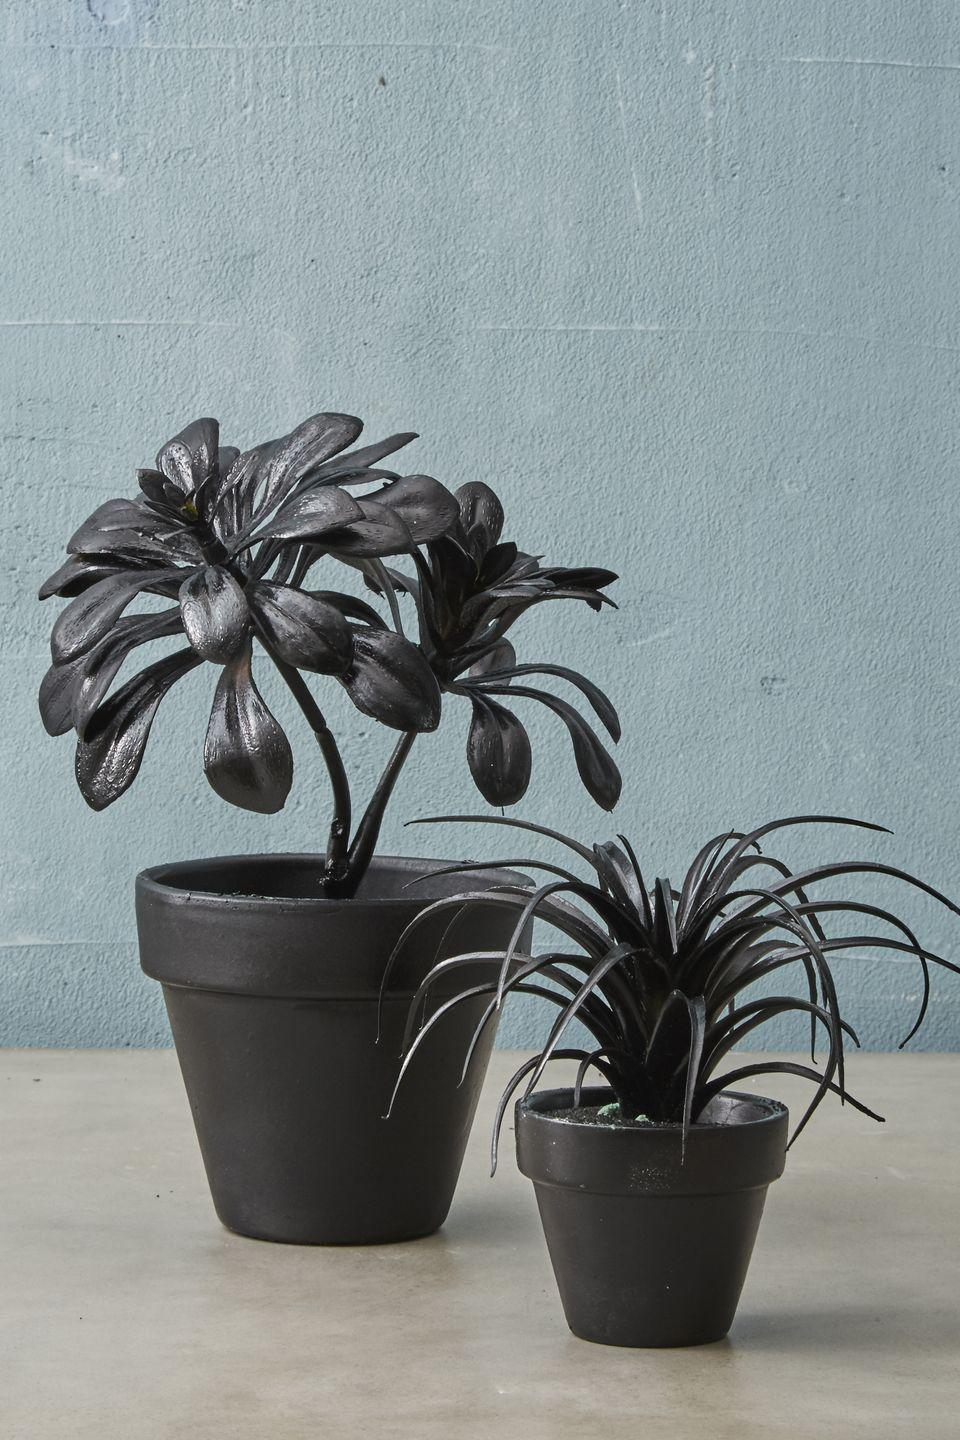 """<p>Apply <span class=""""redactor-unlink"""">black spray paint</span> liberally to a <span class=""""redactor-unlink"""">faux plant for a touch of eeriness.</span> Then stick it in a black pot with dark-colored sand. </p><p><a class=""""link rapid-noclick-resp"""" href=""""https://www.amazon.com/Velener-Potted-Plastic-Bamboo-Leaves/dp/B0768XP26K/?tag=syn-yahoo-20&ascsubtag=%5Bartid%7C10055.g.421%5Bsrc%7Cyahoo-us"""" rel=""""nofollow noopener"""" target=""""_blank"""" data-ylk=""""slk:SHOP FAKE PLANTS"""">SHOP FAKE PLANTS</a></p>"""